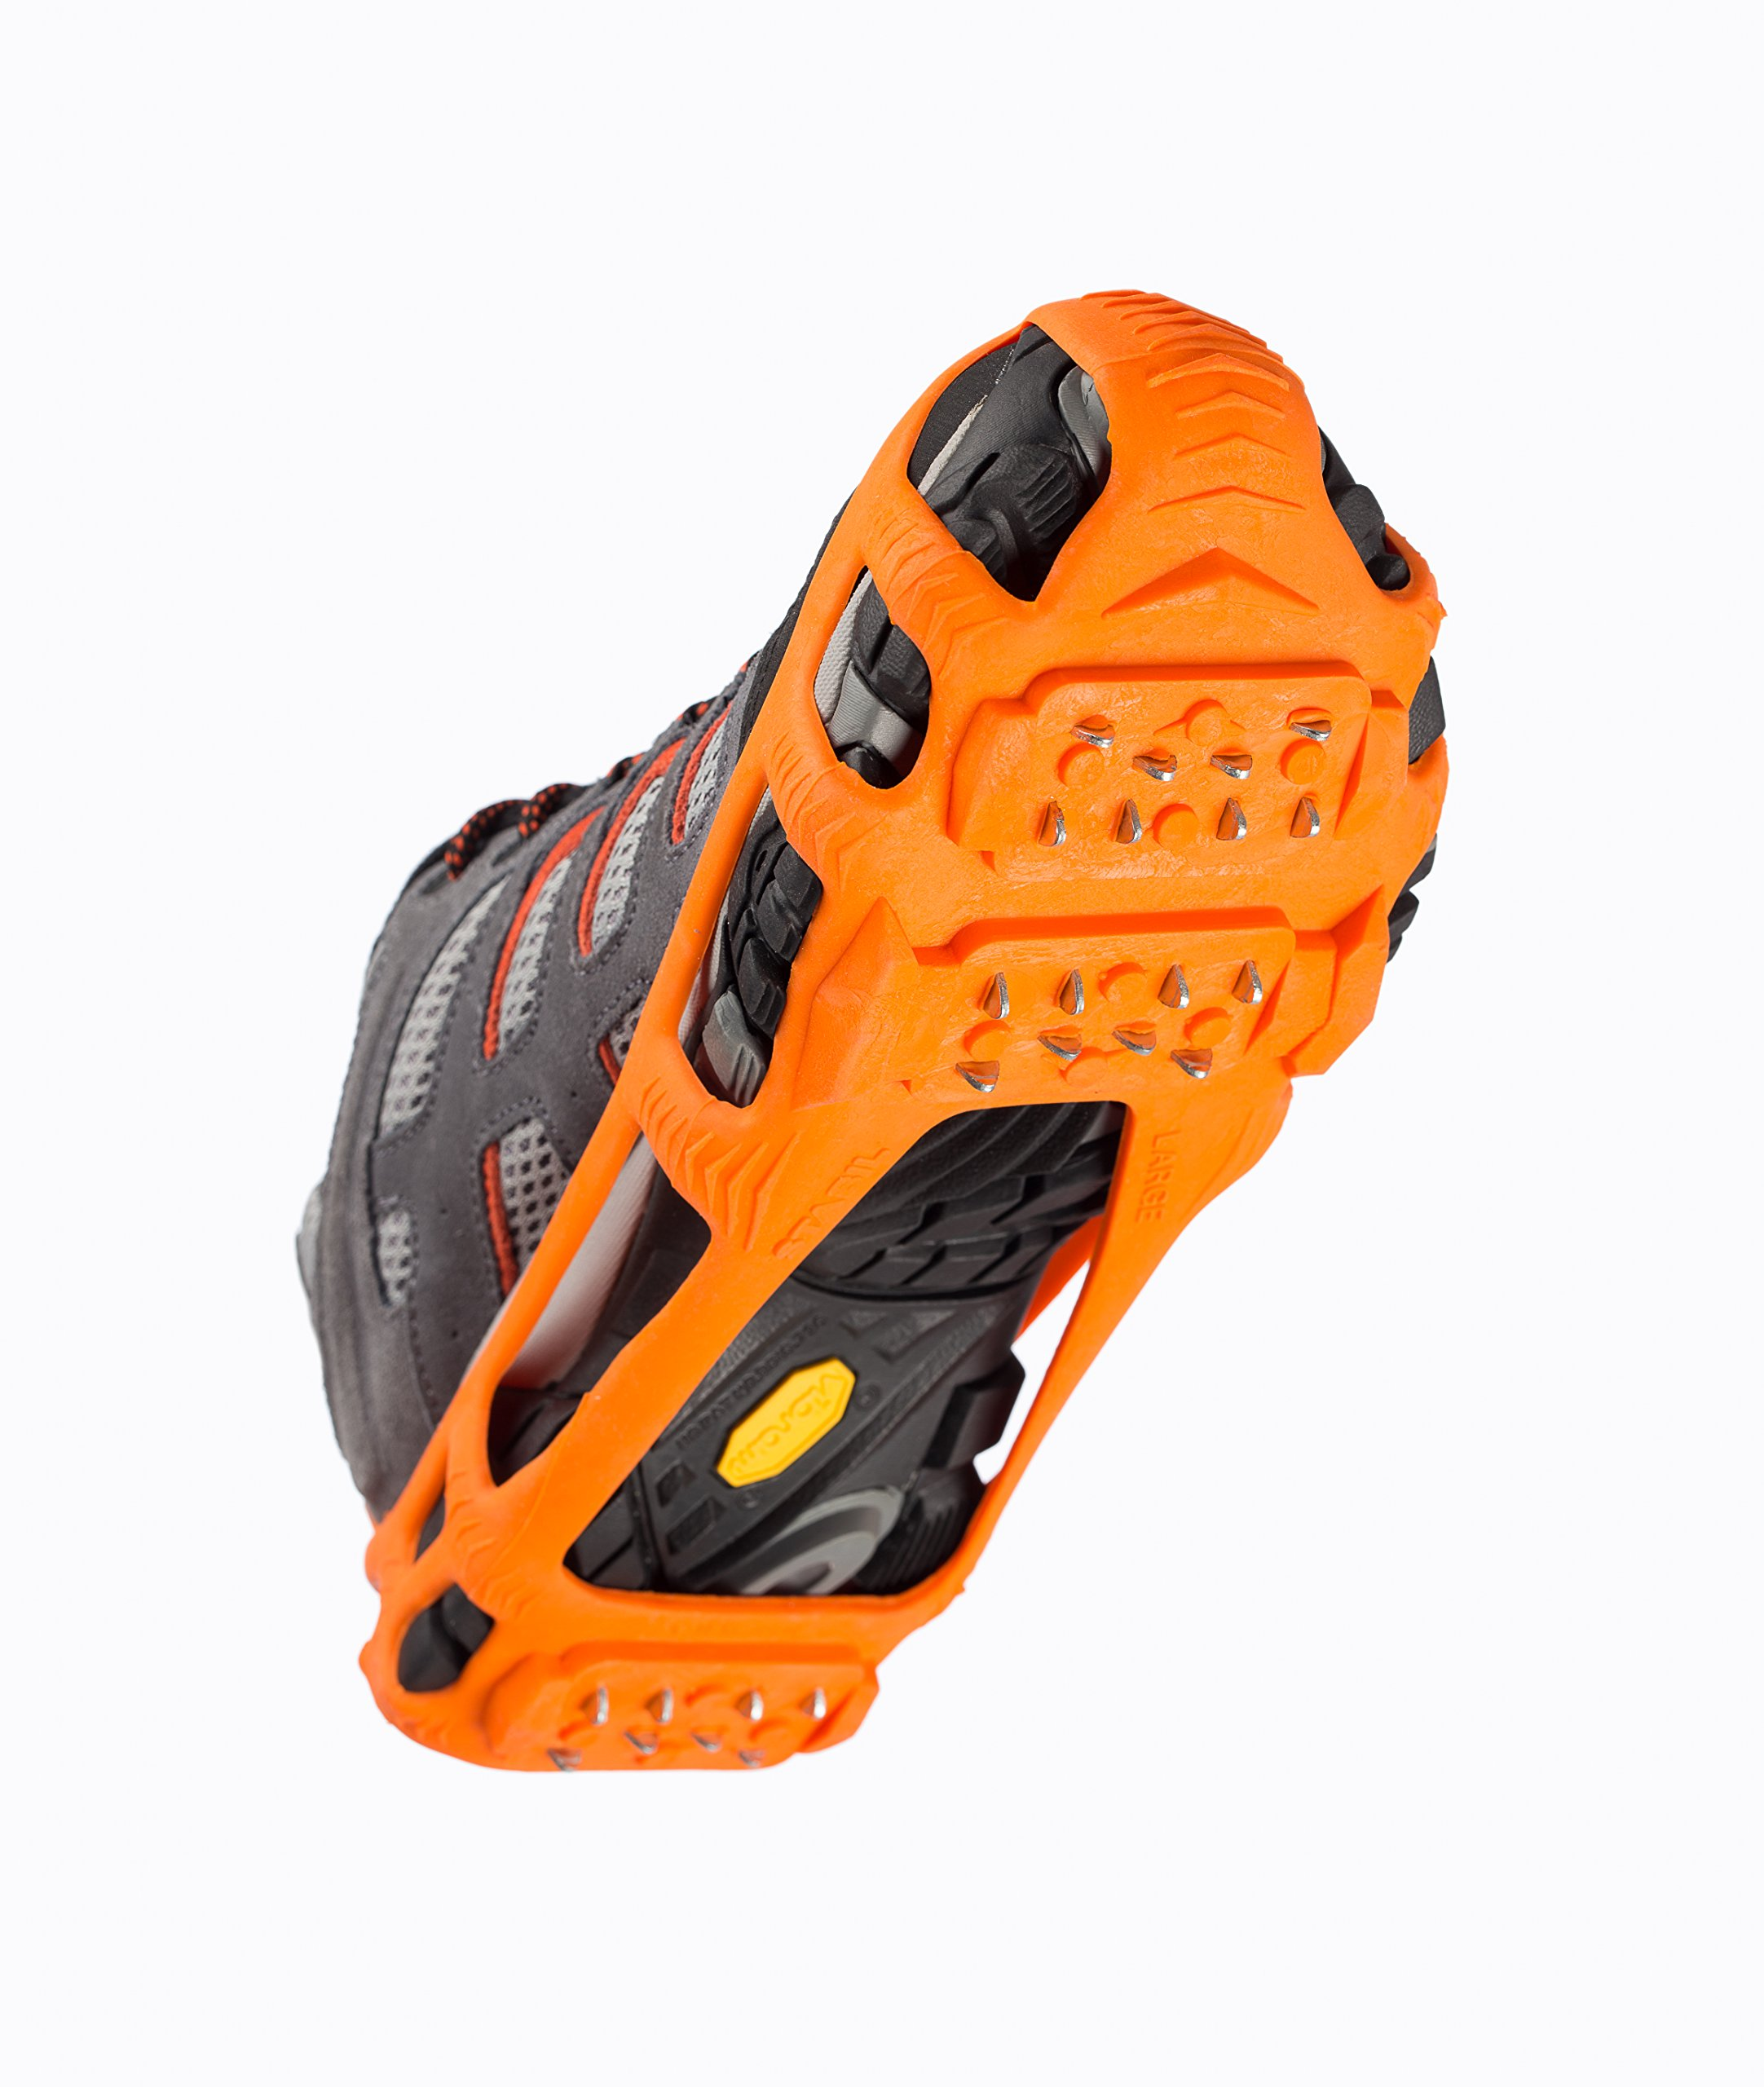 STABILicers Walk Traction Ice Cleat, Large (10.5-13 Men / 12+ Women), Orange